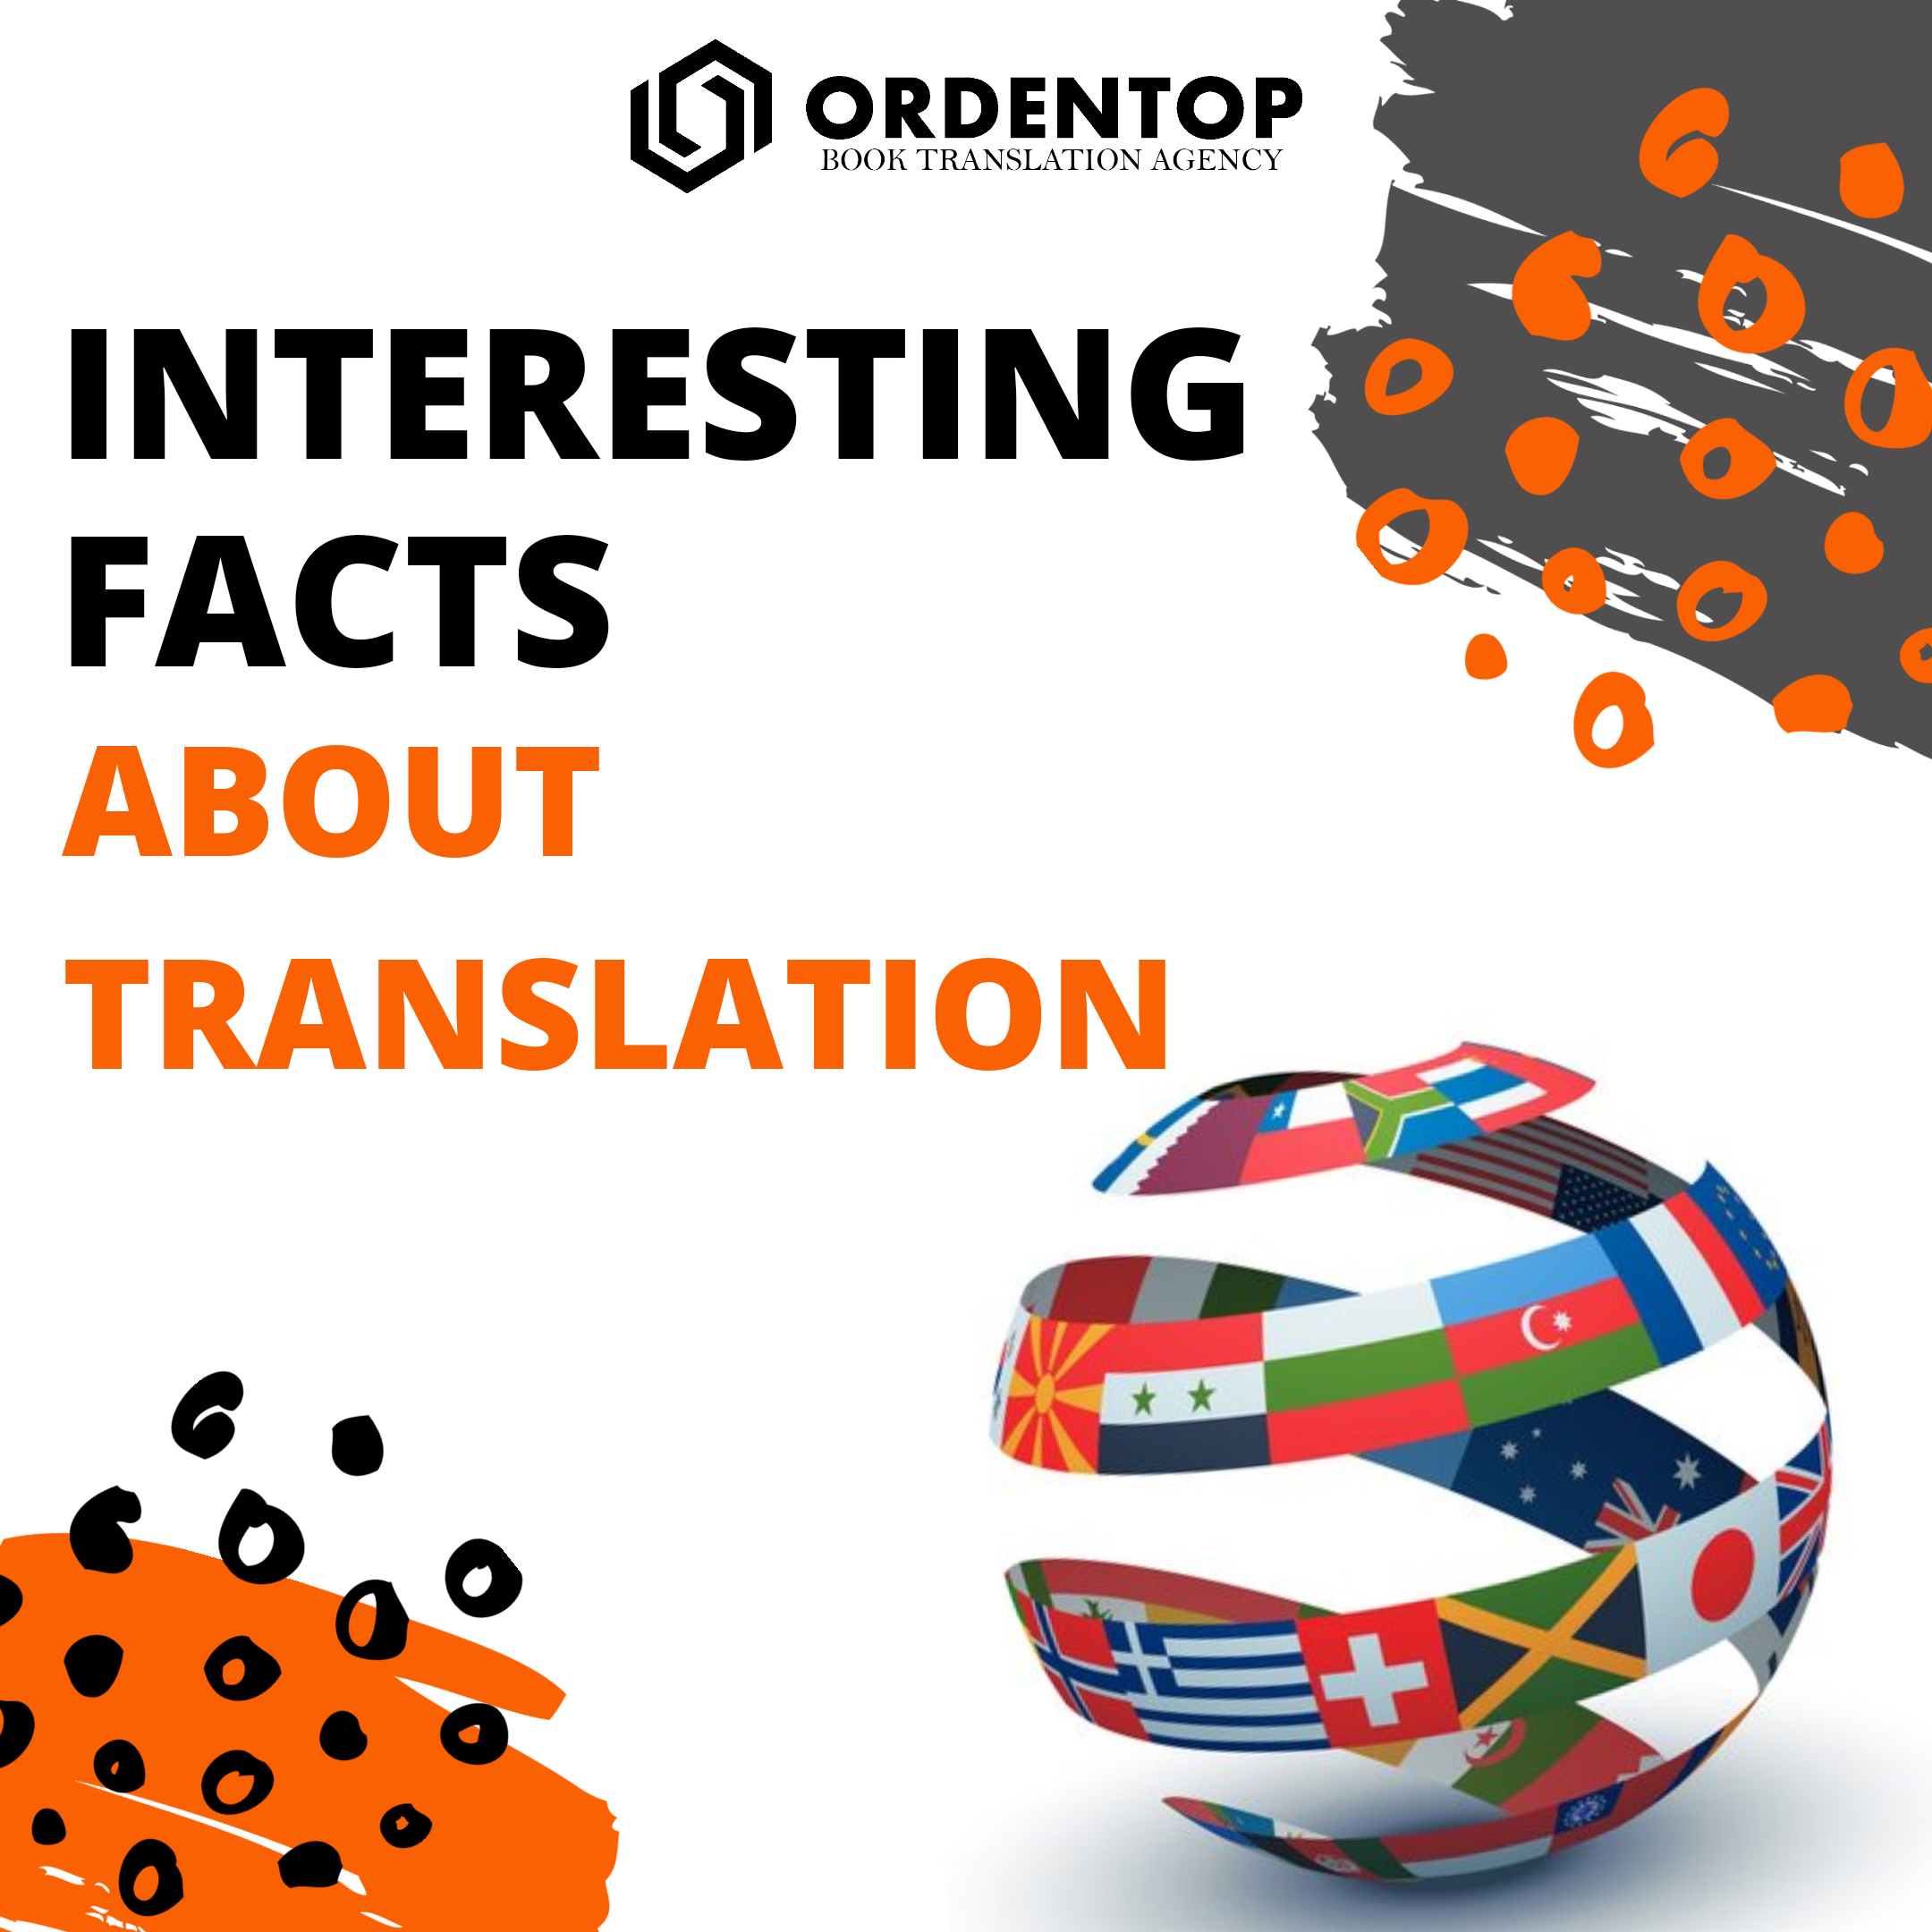 Interesting facts about translation